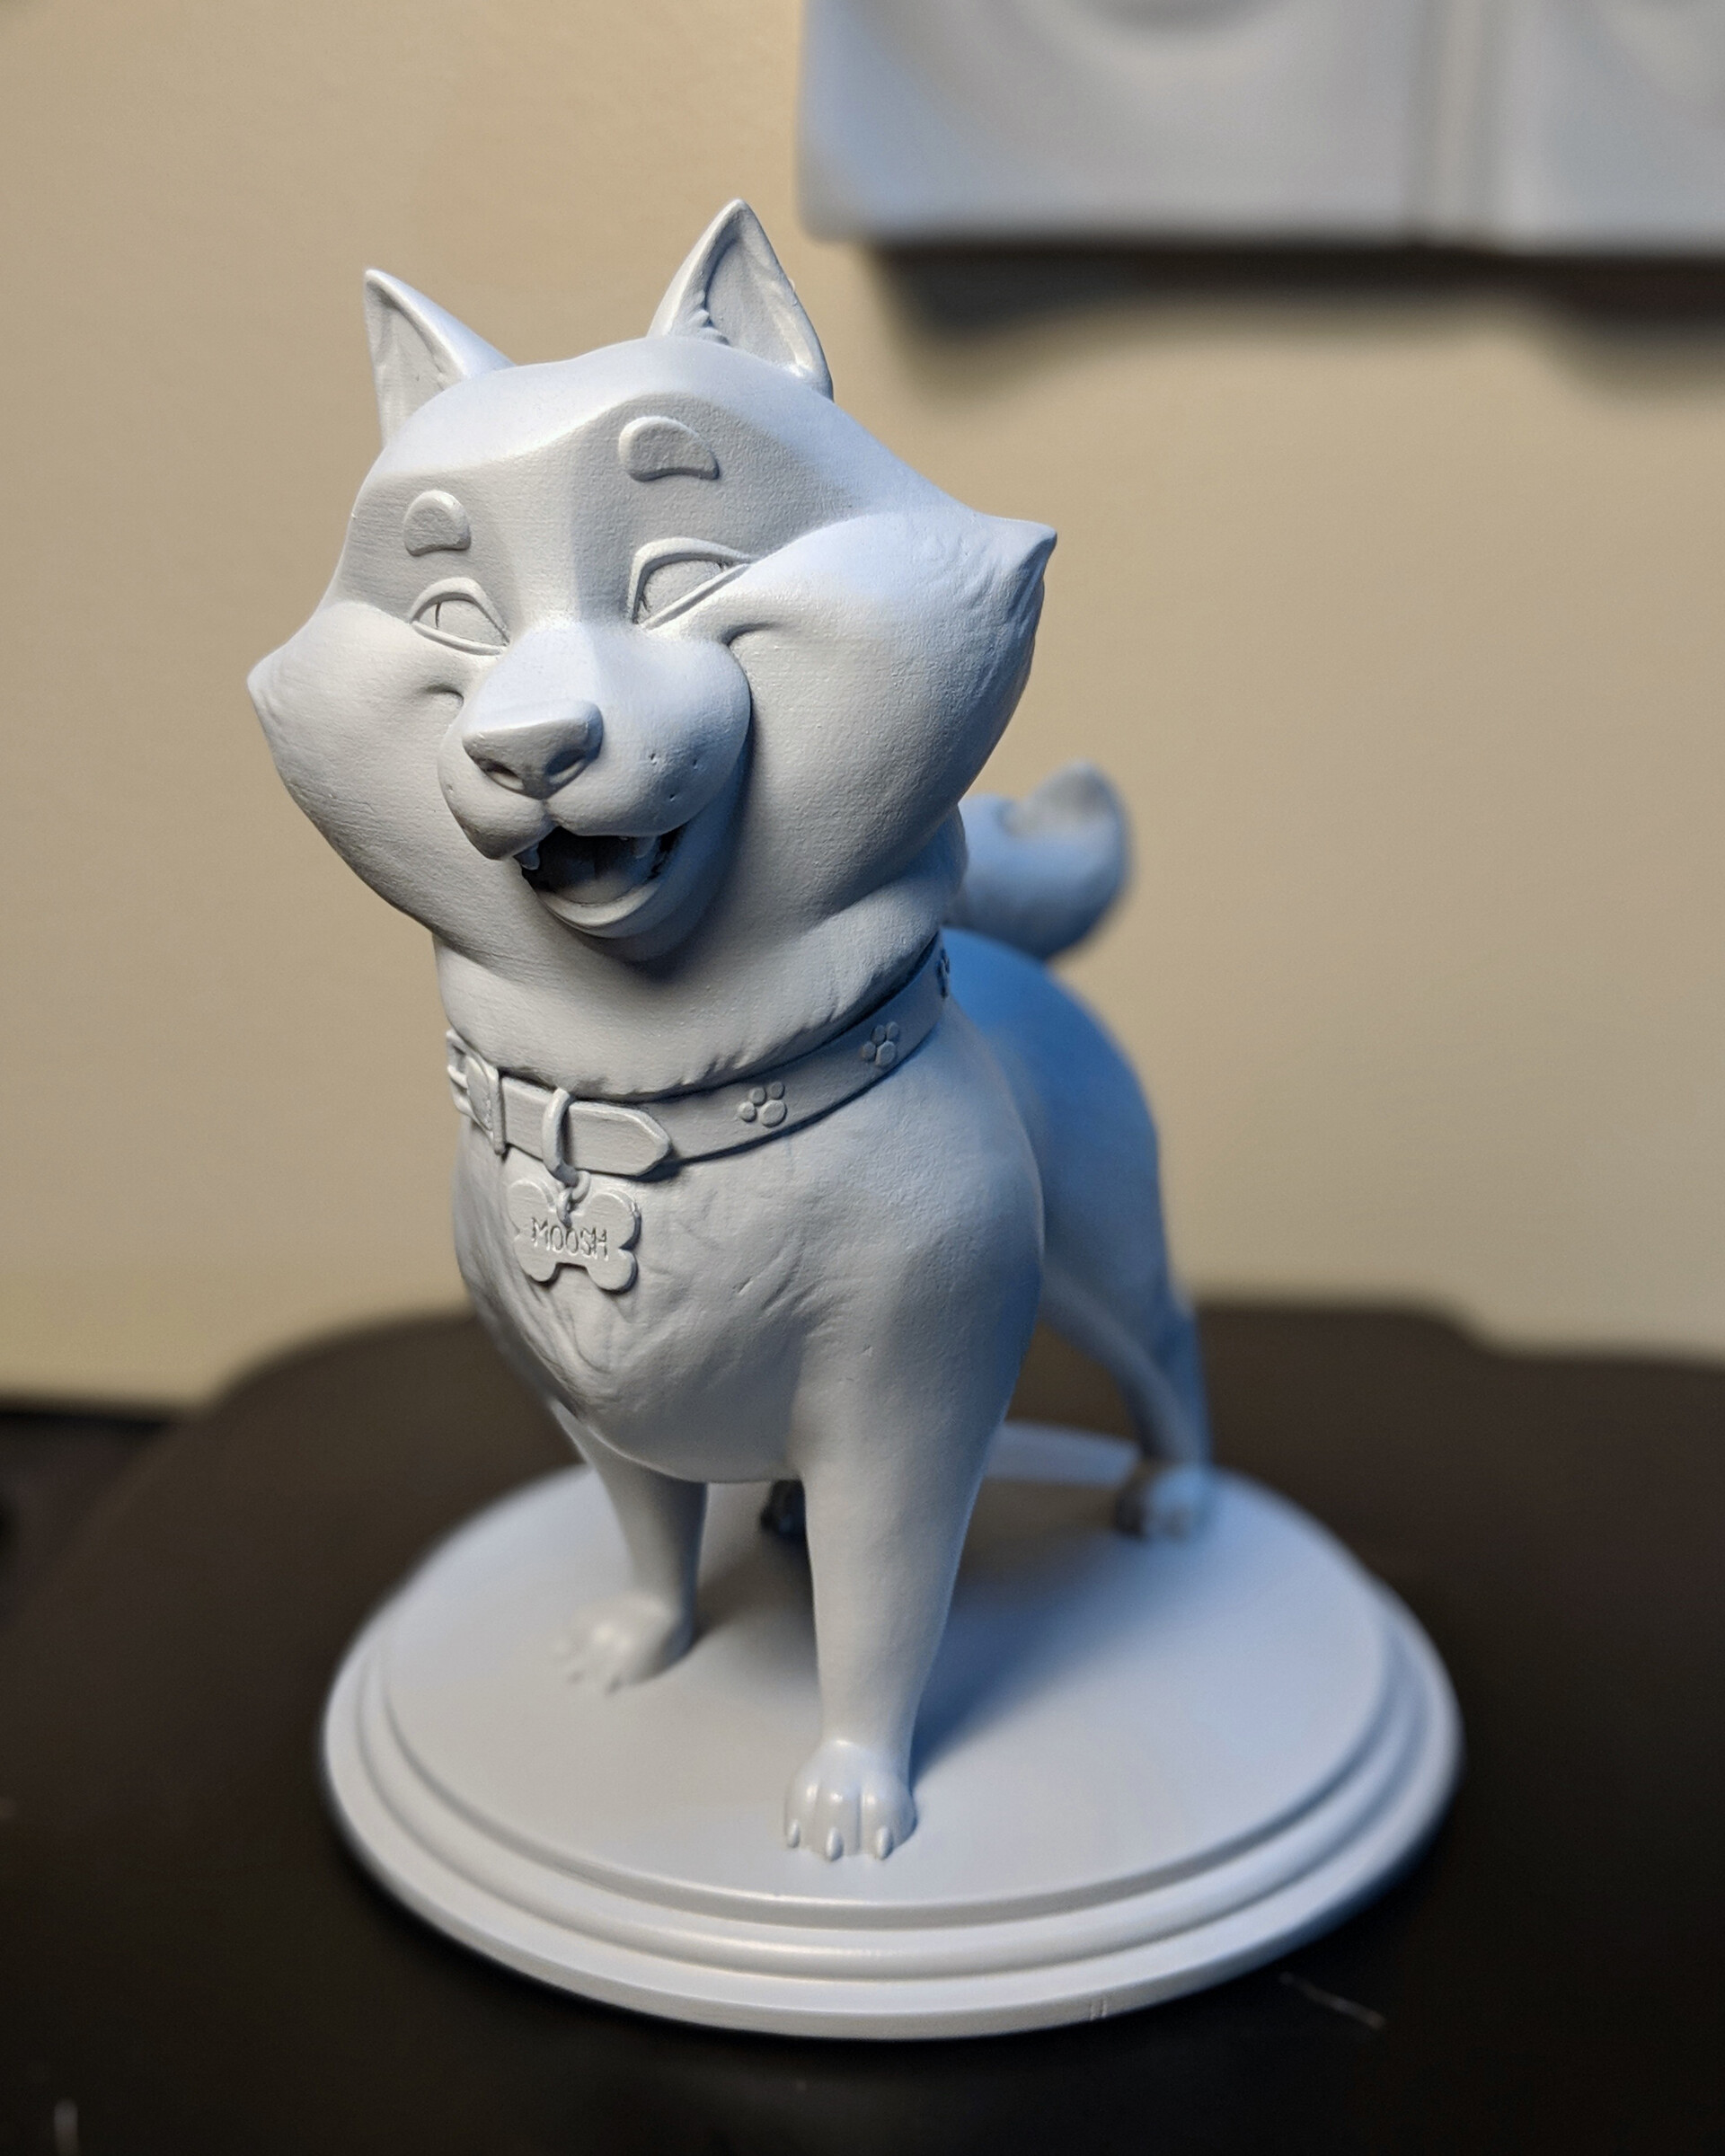 3D Printed Prototype Maquette